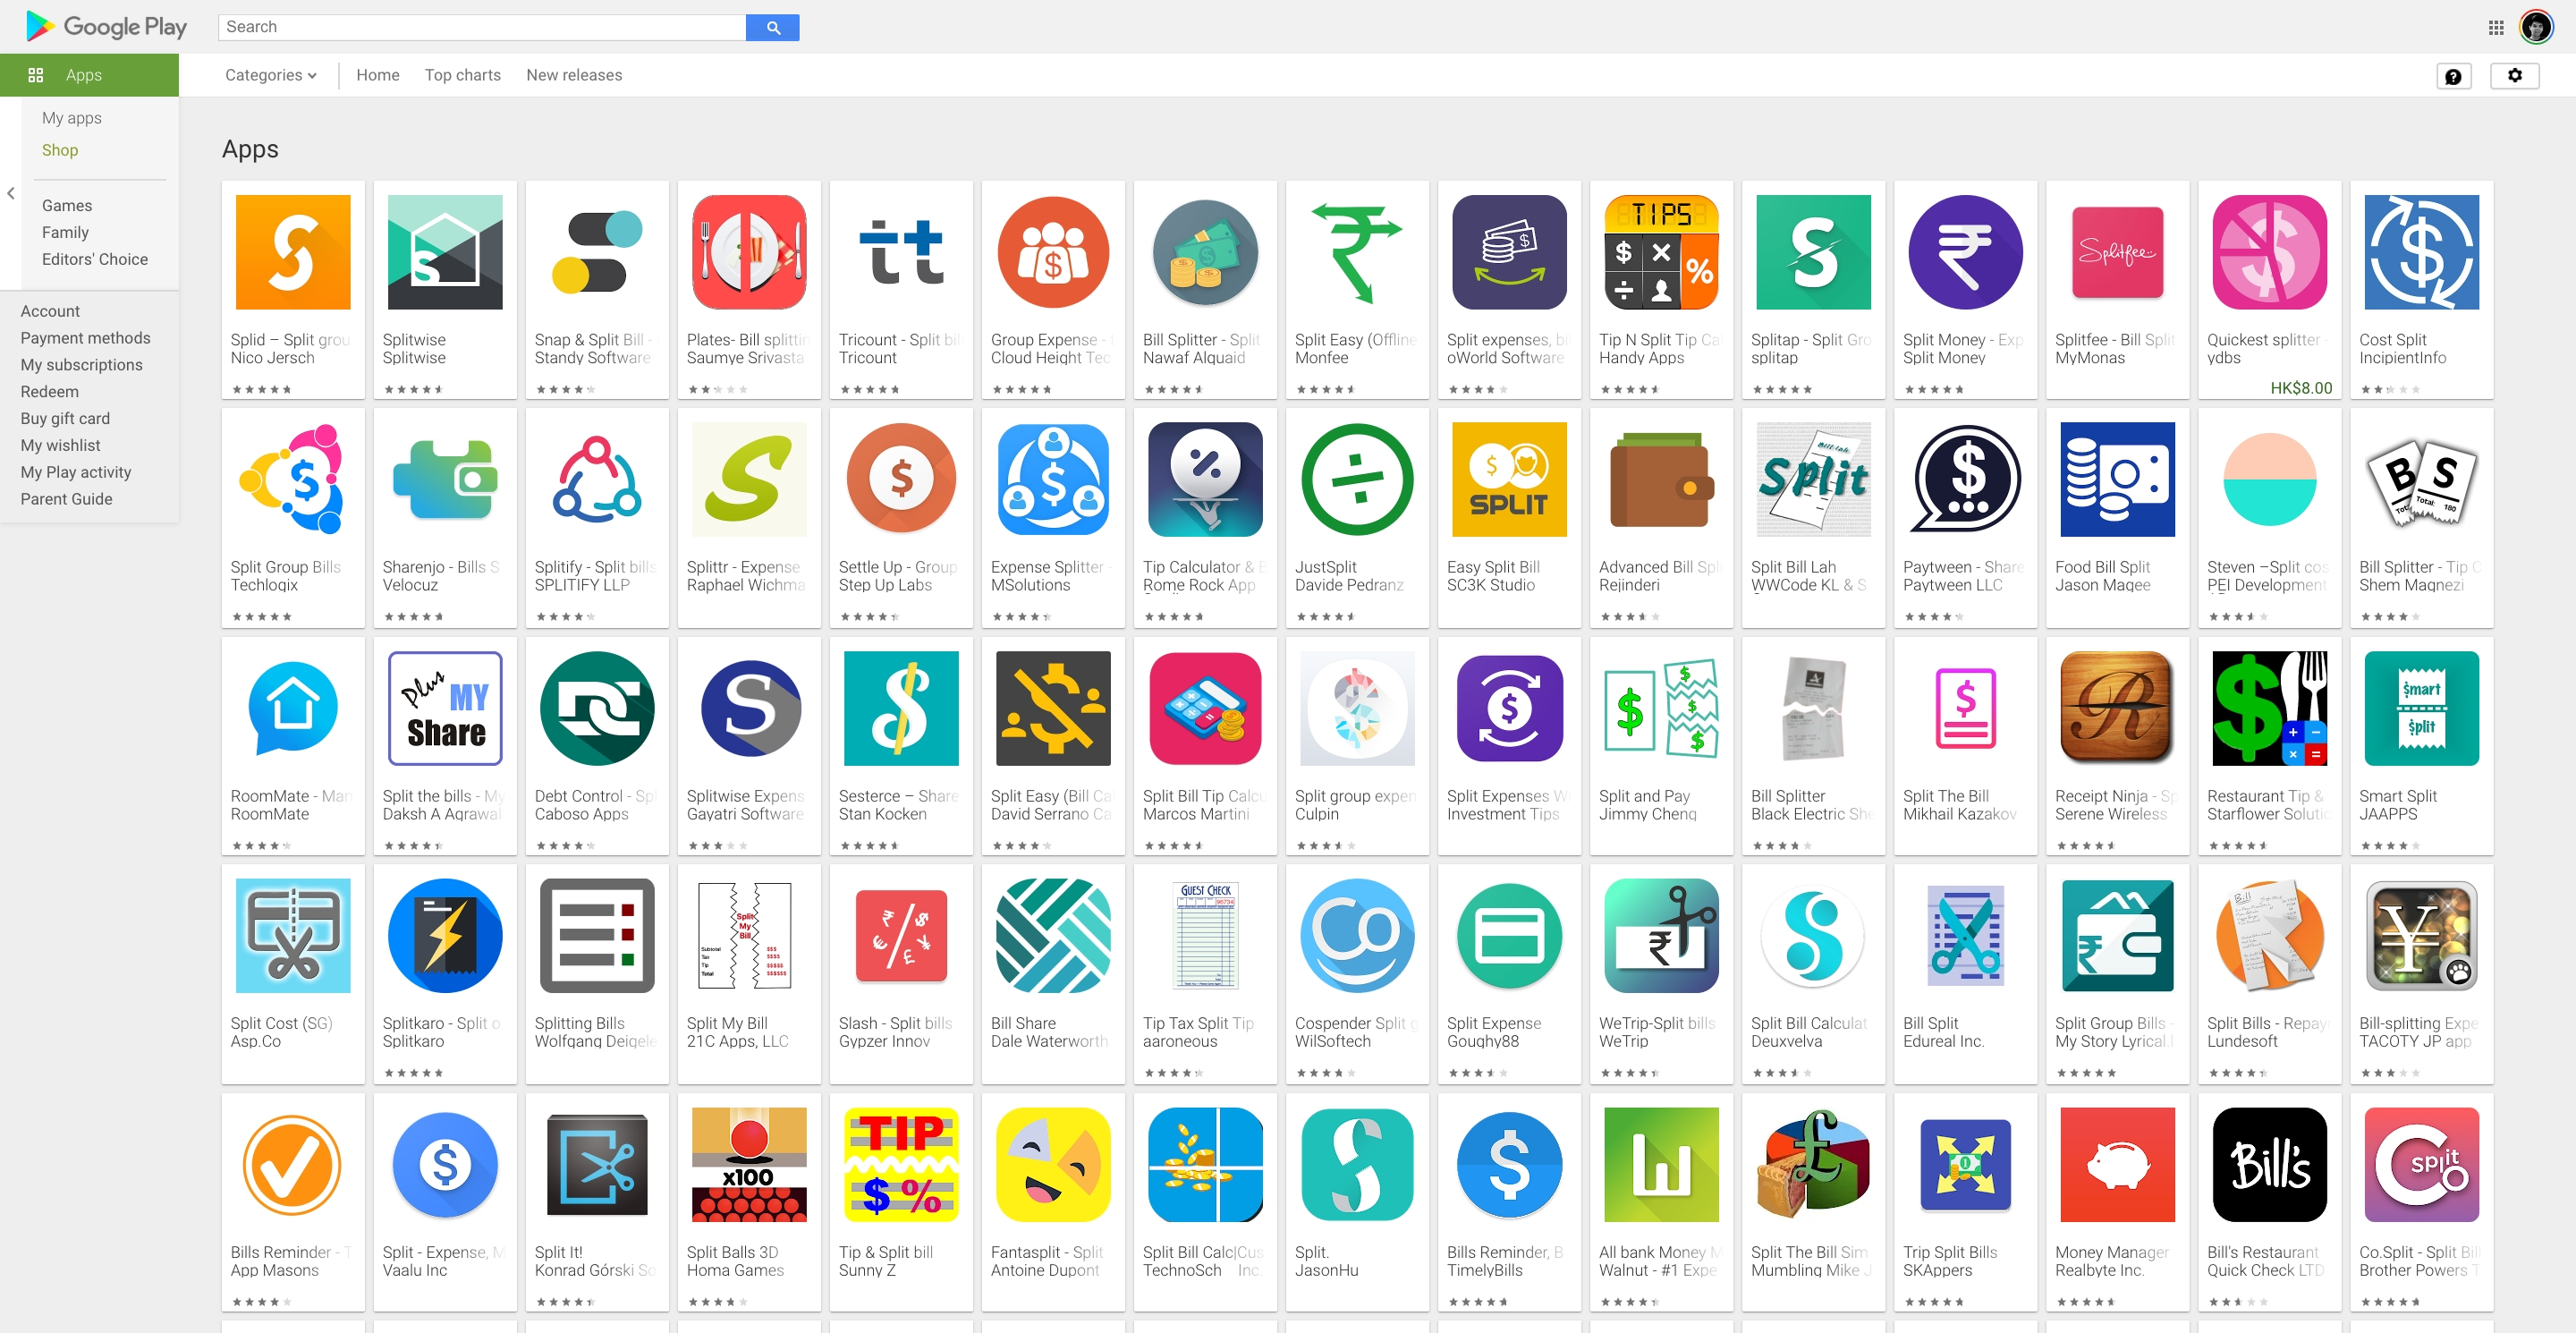 Over 1000 bill splitting apps available in Google Play store.